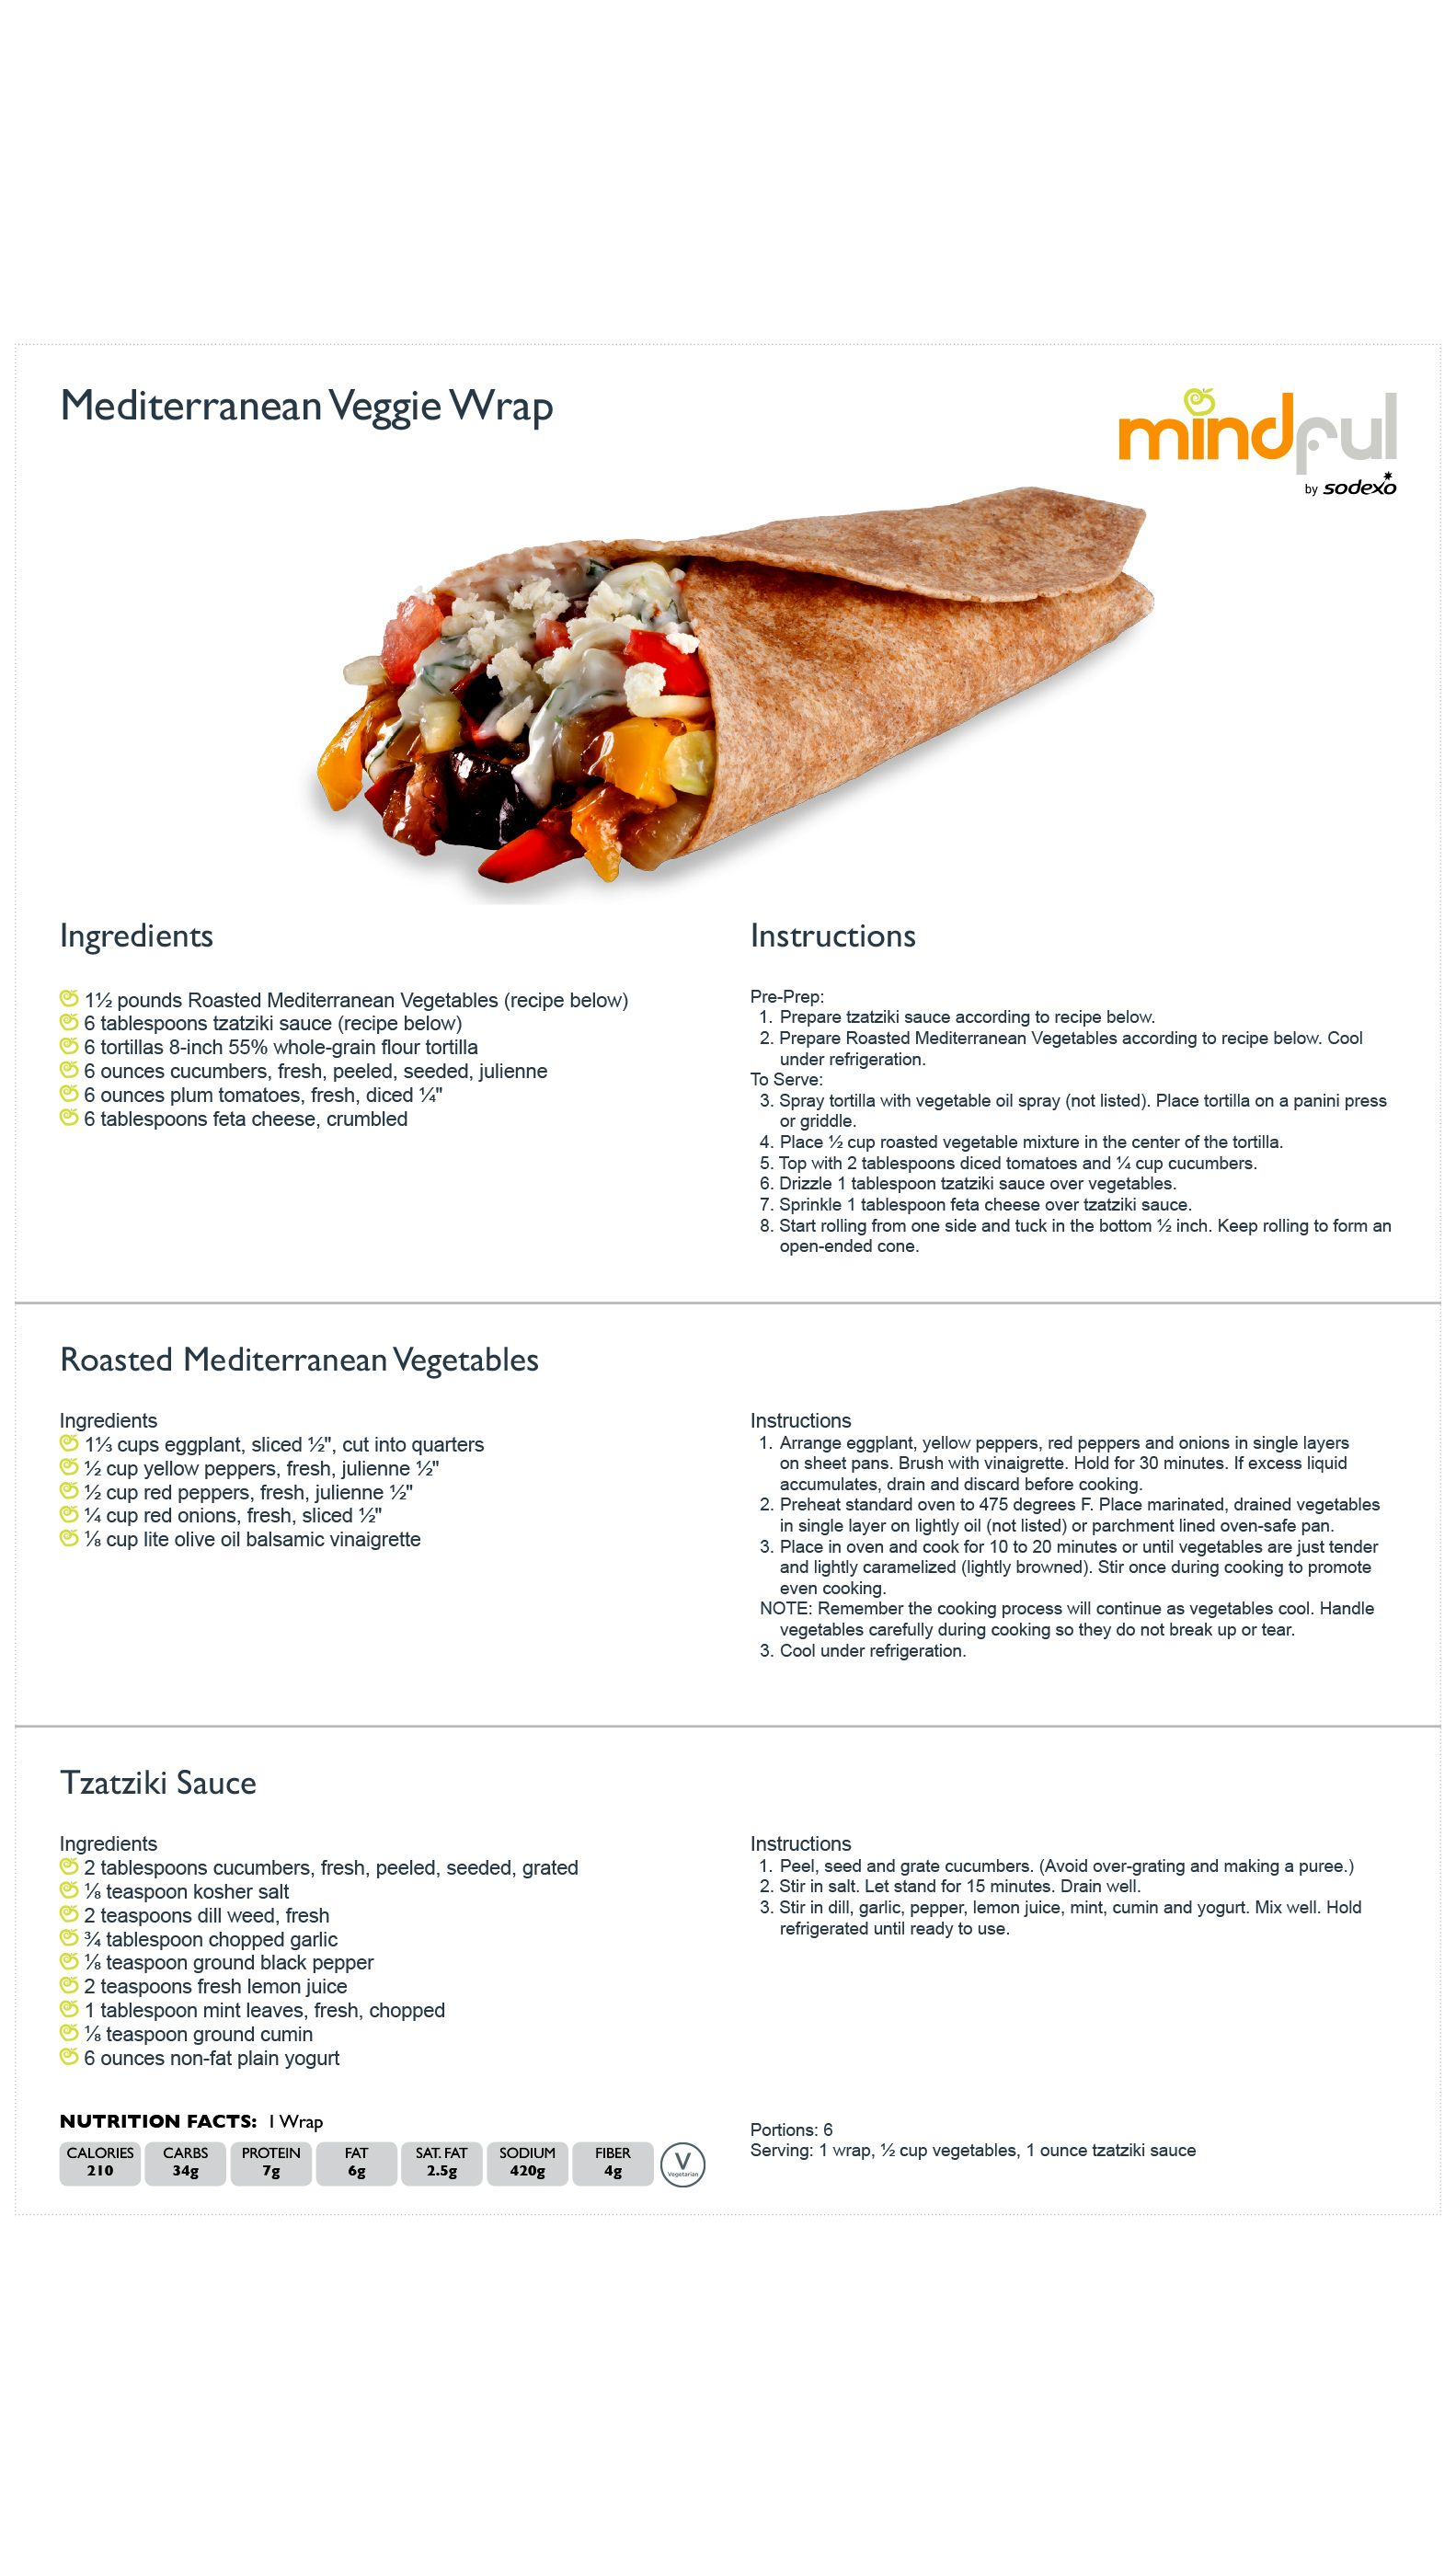 Mediterranean Veggie Wrap Mindful Sodexo Com Yogurt Nutrition Facts Roasted Mediterranean Vegetables Veggie Wraps